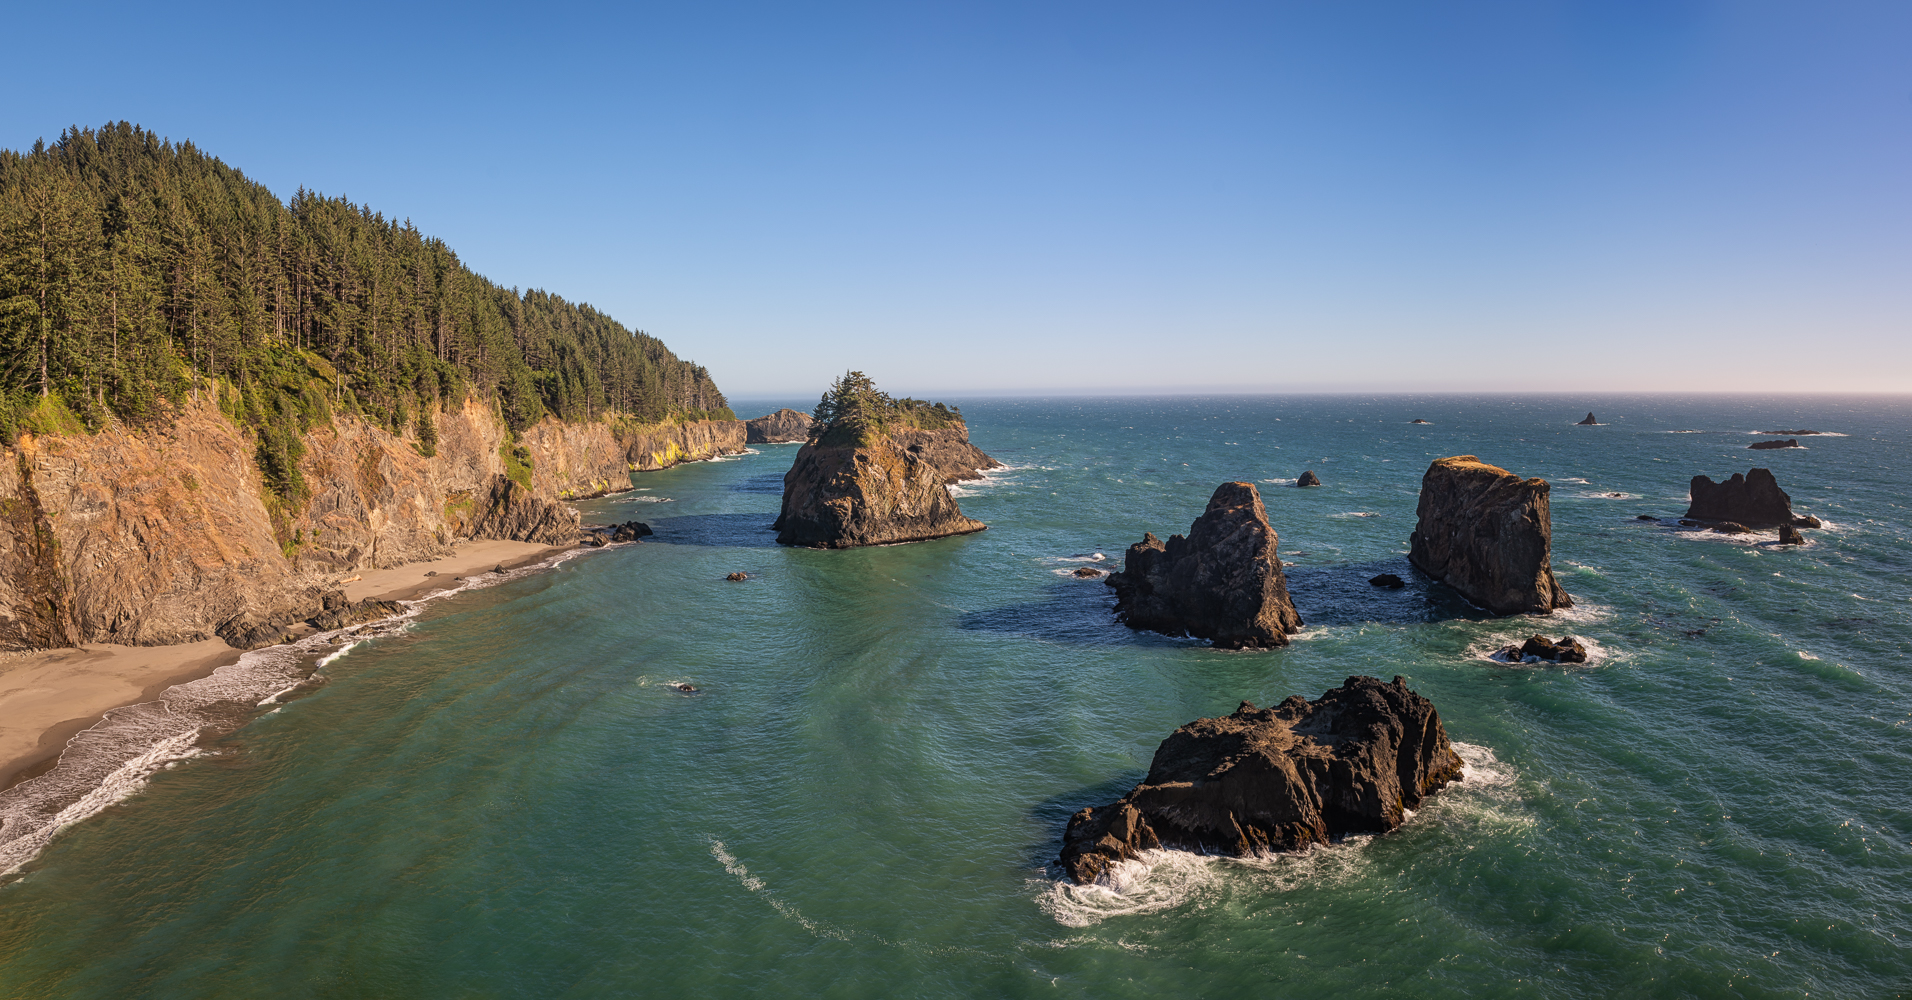 Afternoon at the Boadman Coast of Oregon, as seen from the Arch Rock Picnic Area